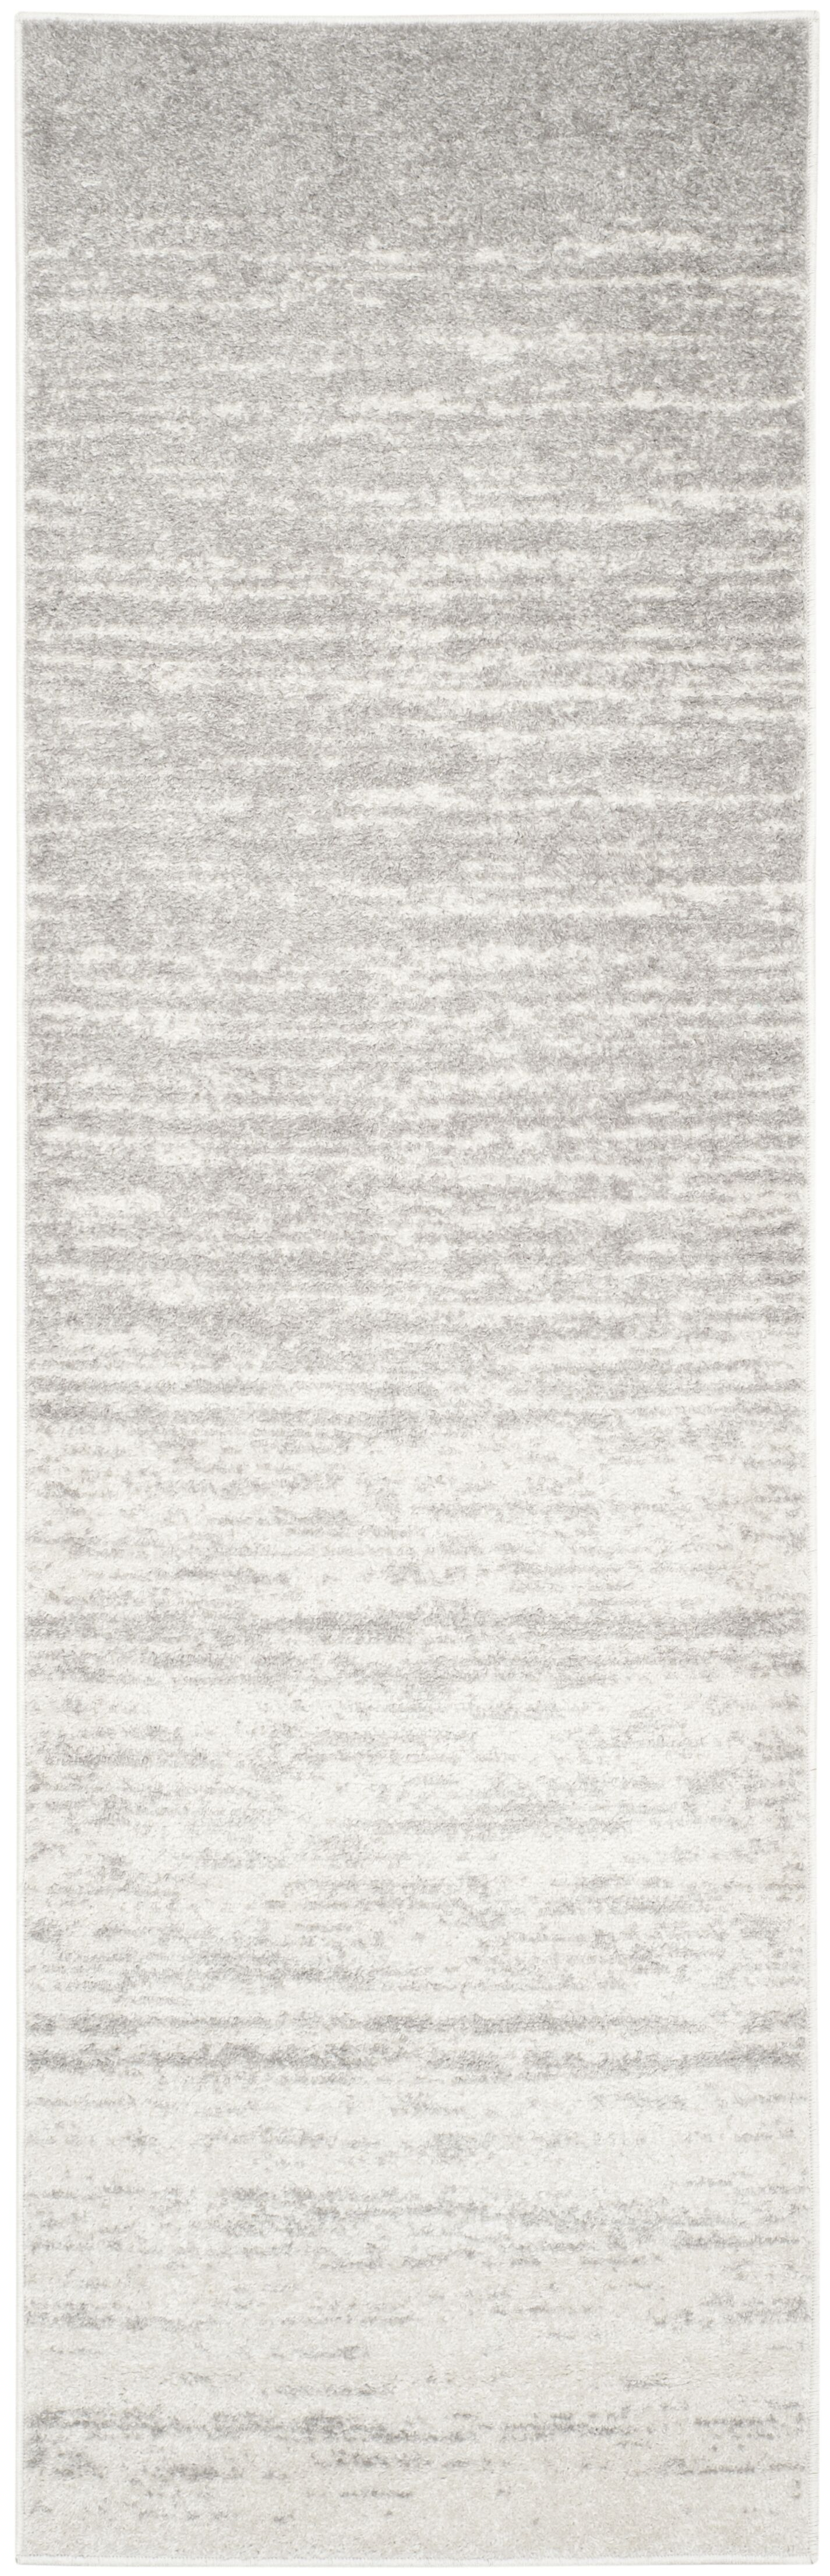 Mcguire Ivory/Silver Area Rug Rug Size: Runner 2'6